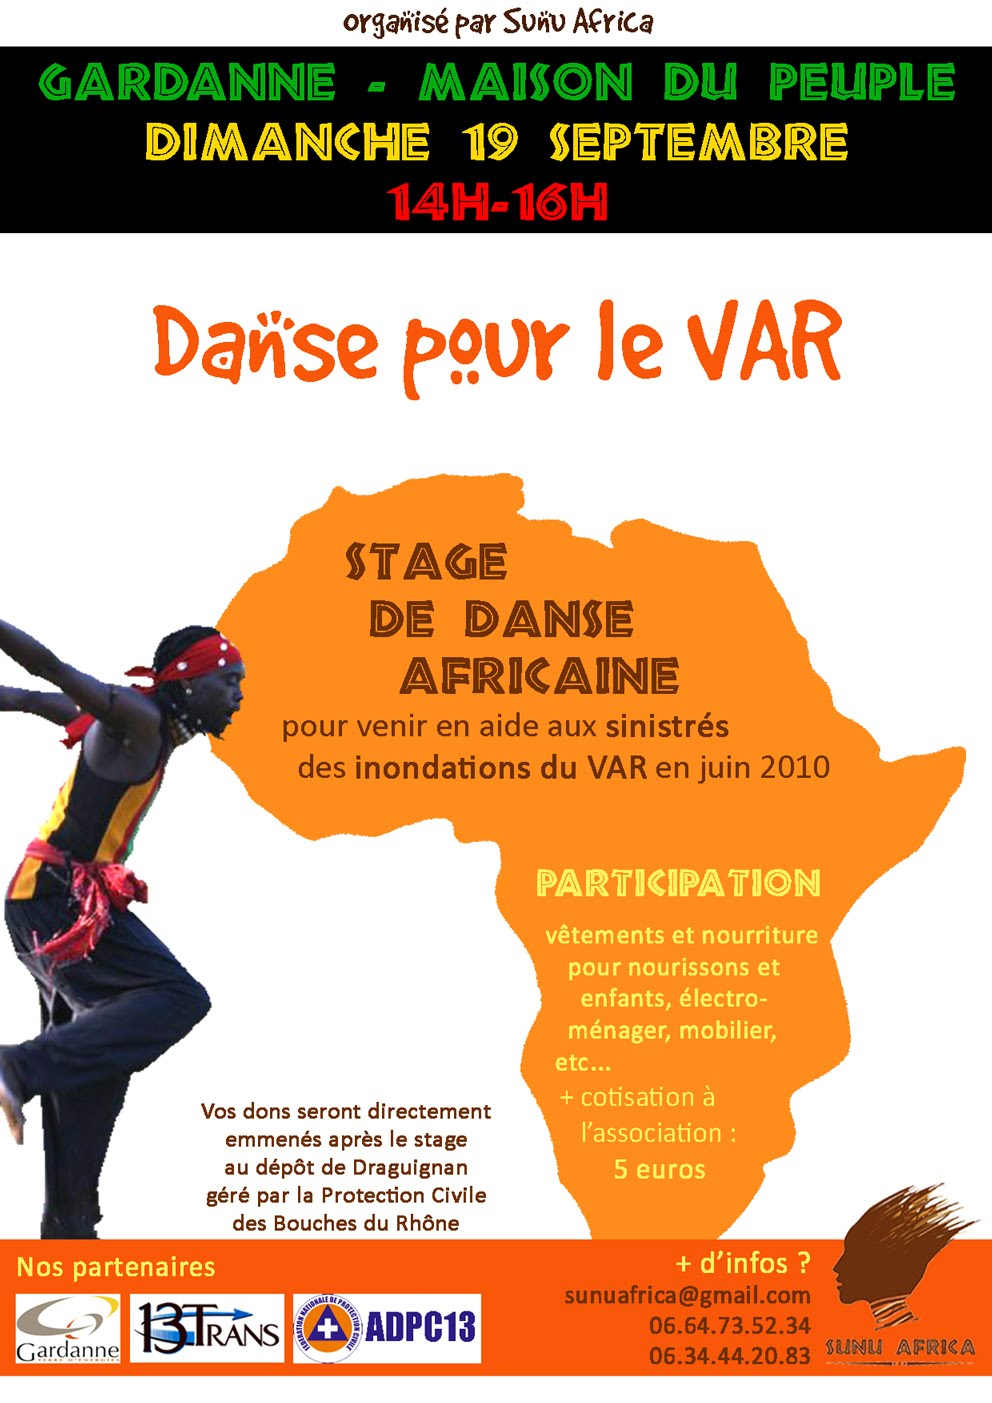 danse pour le var aide aux sinistr s des inondations de juin 2010 sunu africa. Black Bedroom Furniture Sets. Home Design Ideas